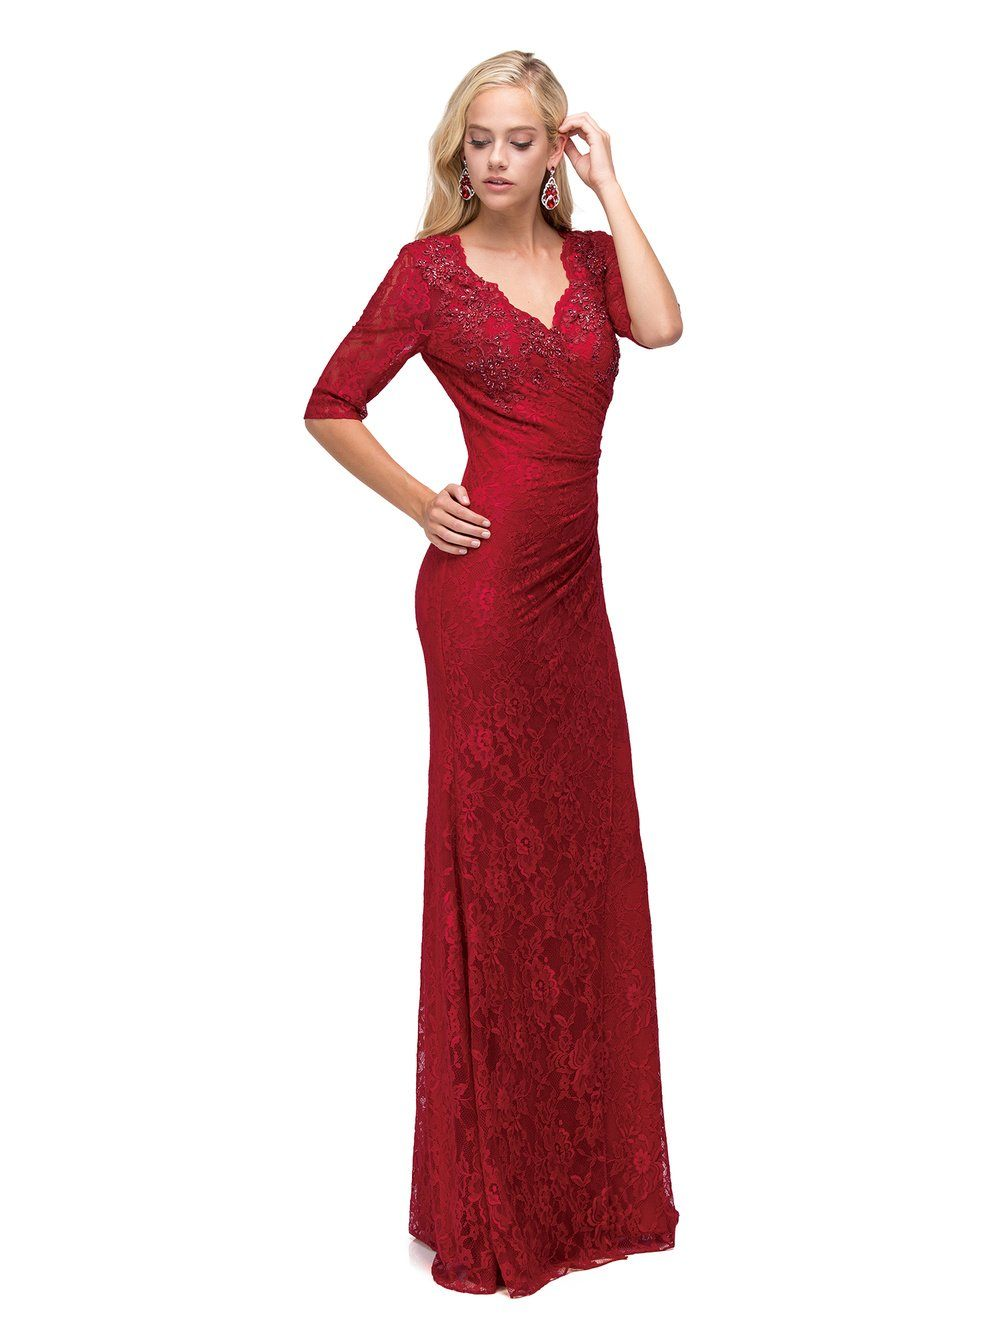 Burgundy Long Sleeve Lace evening gown Dq9586 - CLOSEOUT – Simply ...